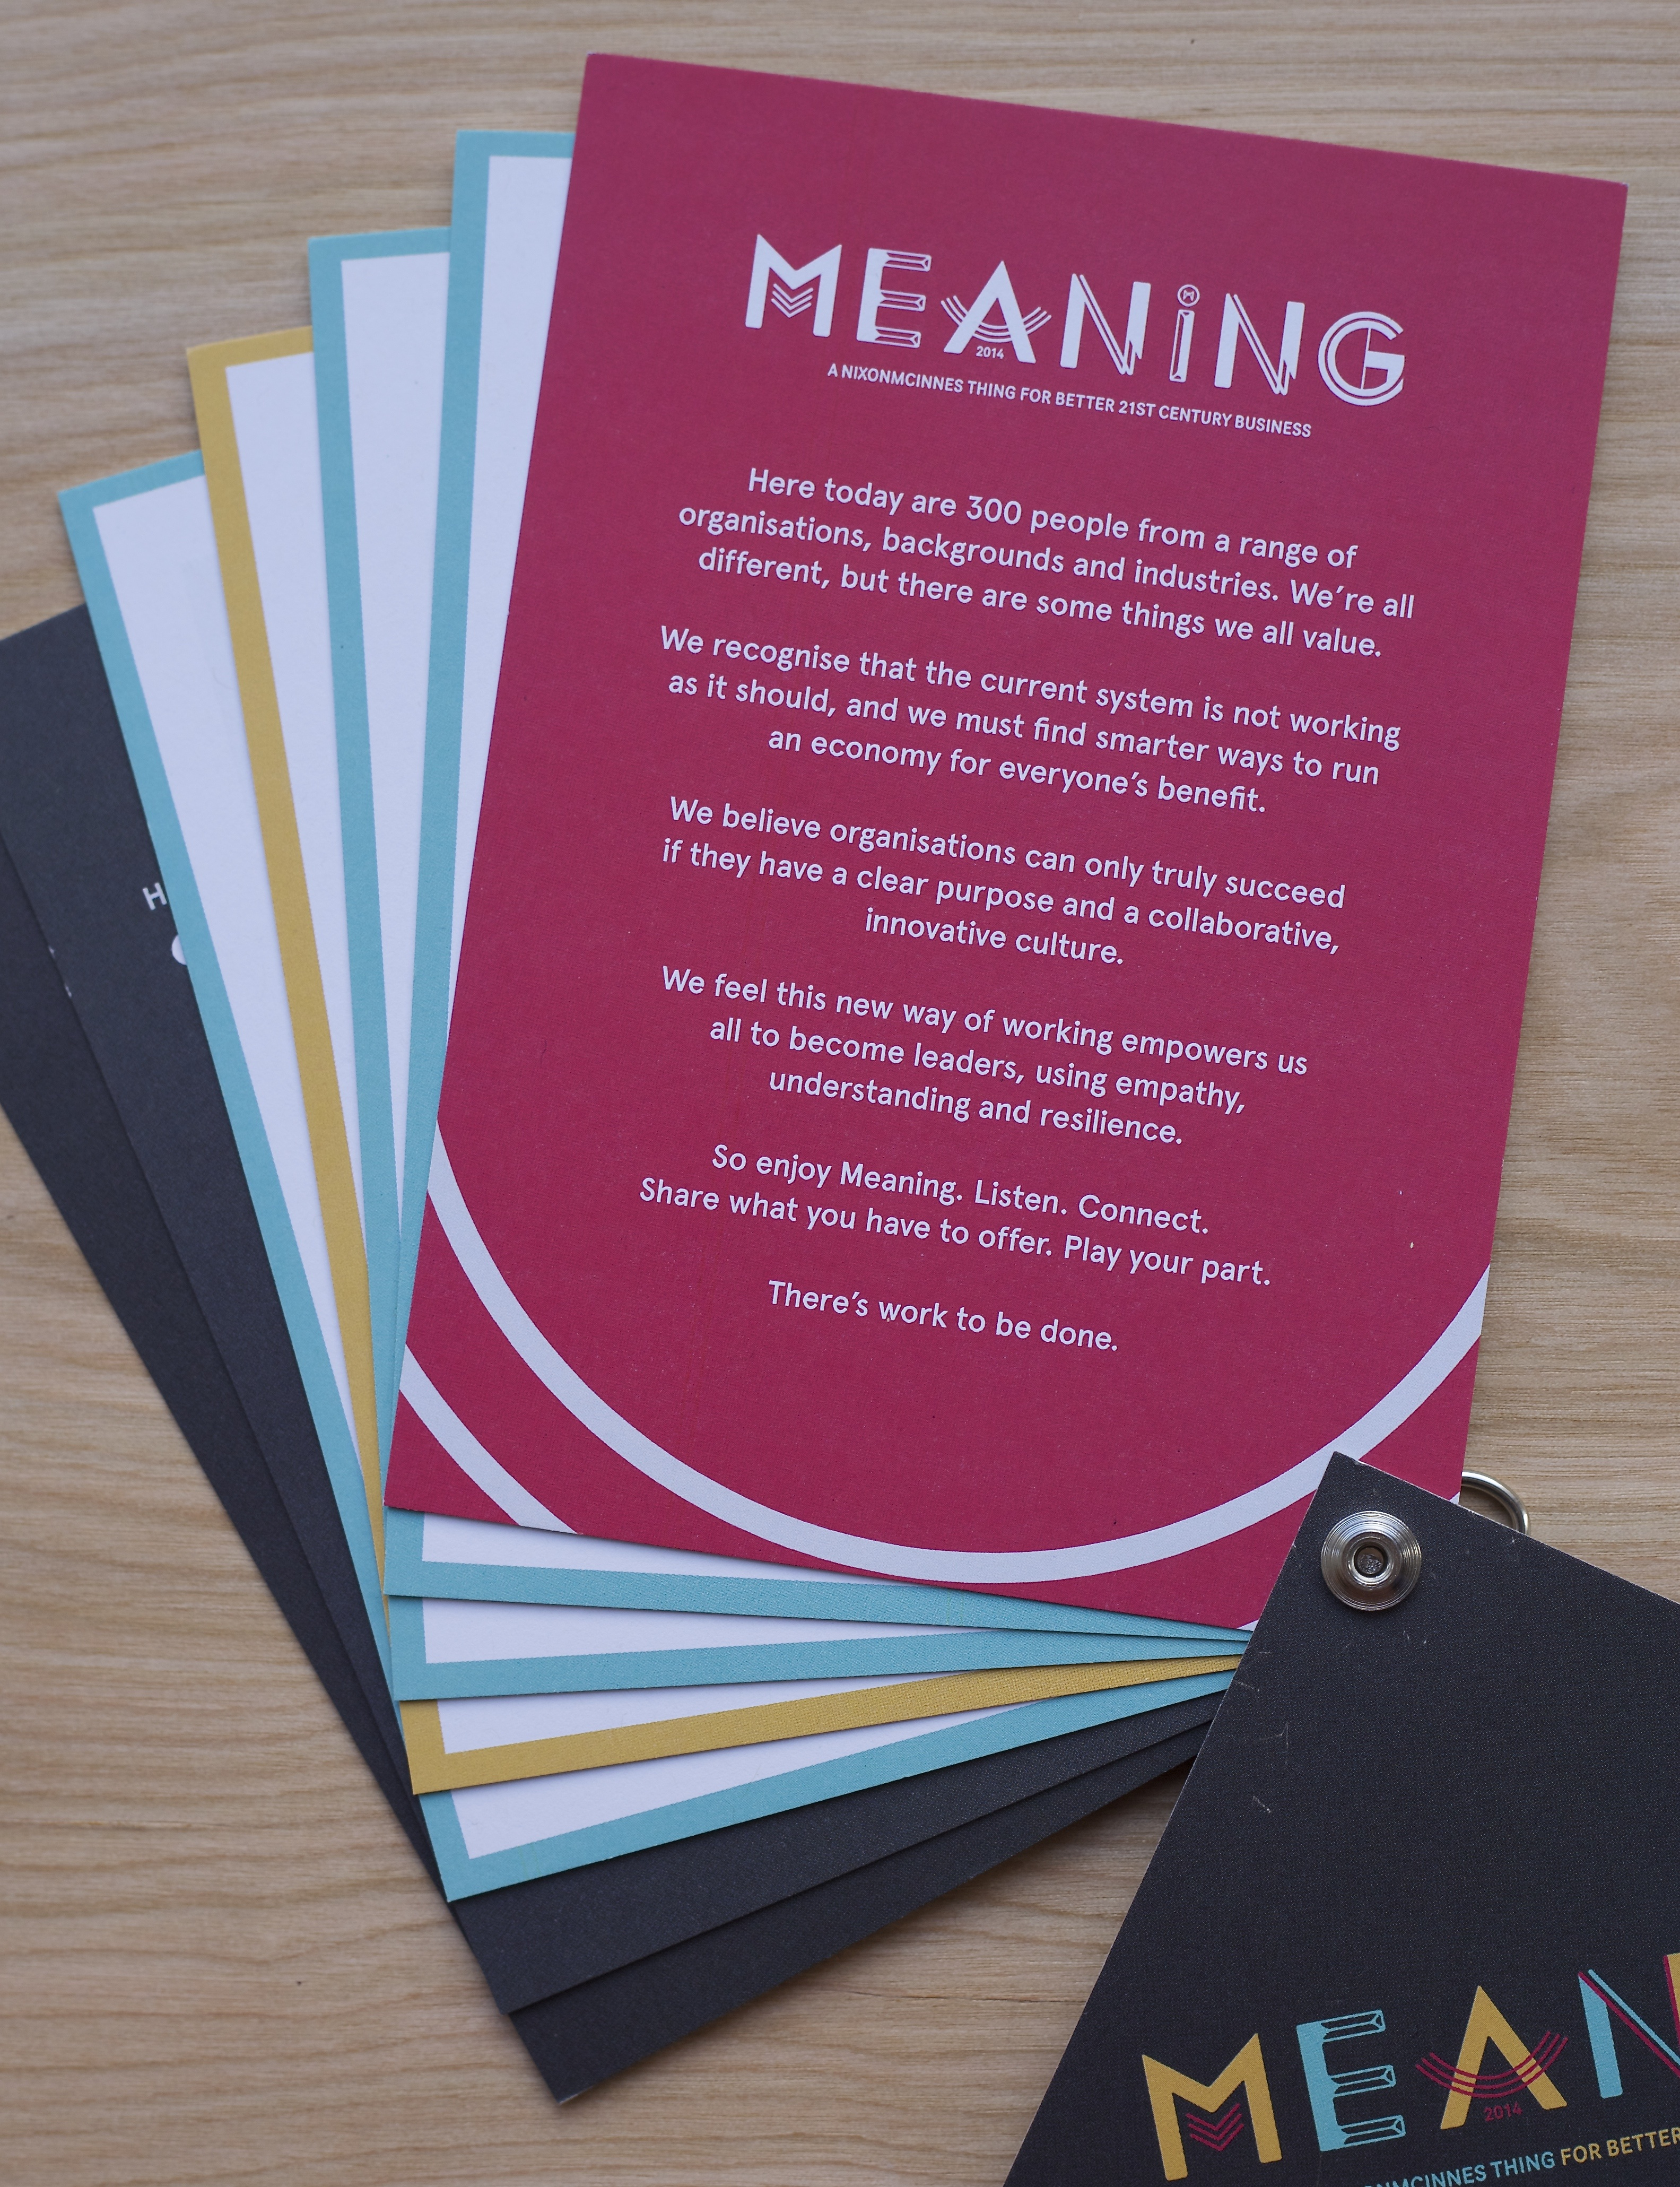 Meaning 2014 - Lanyard welcome page